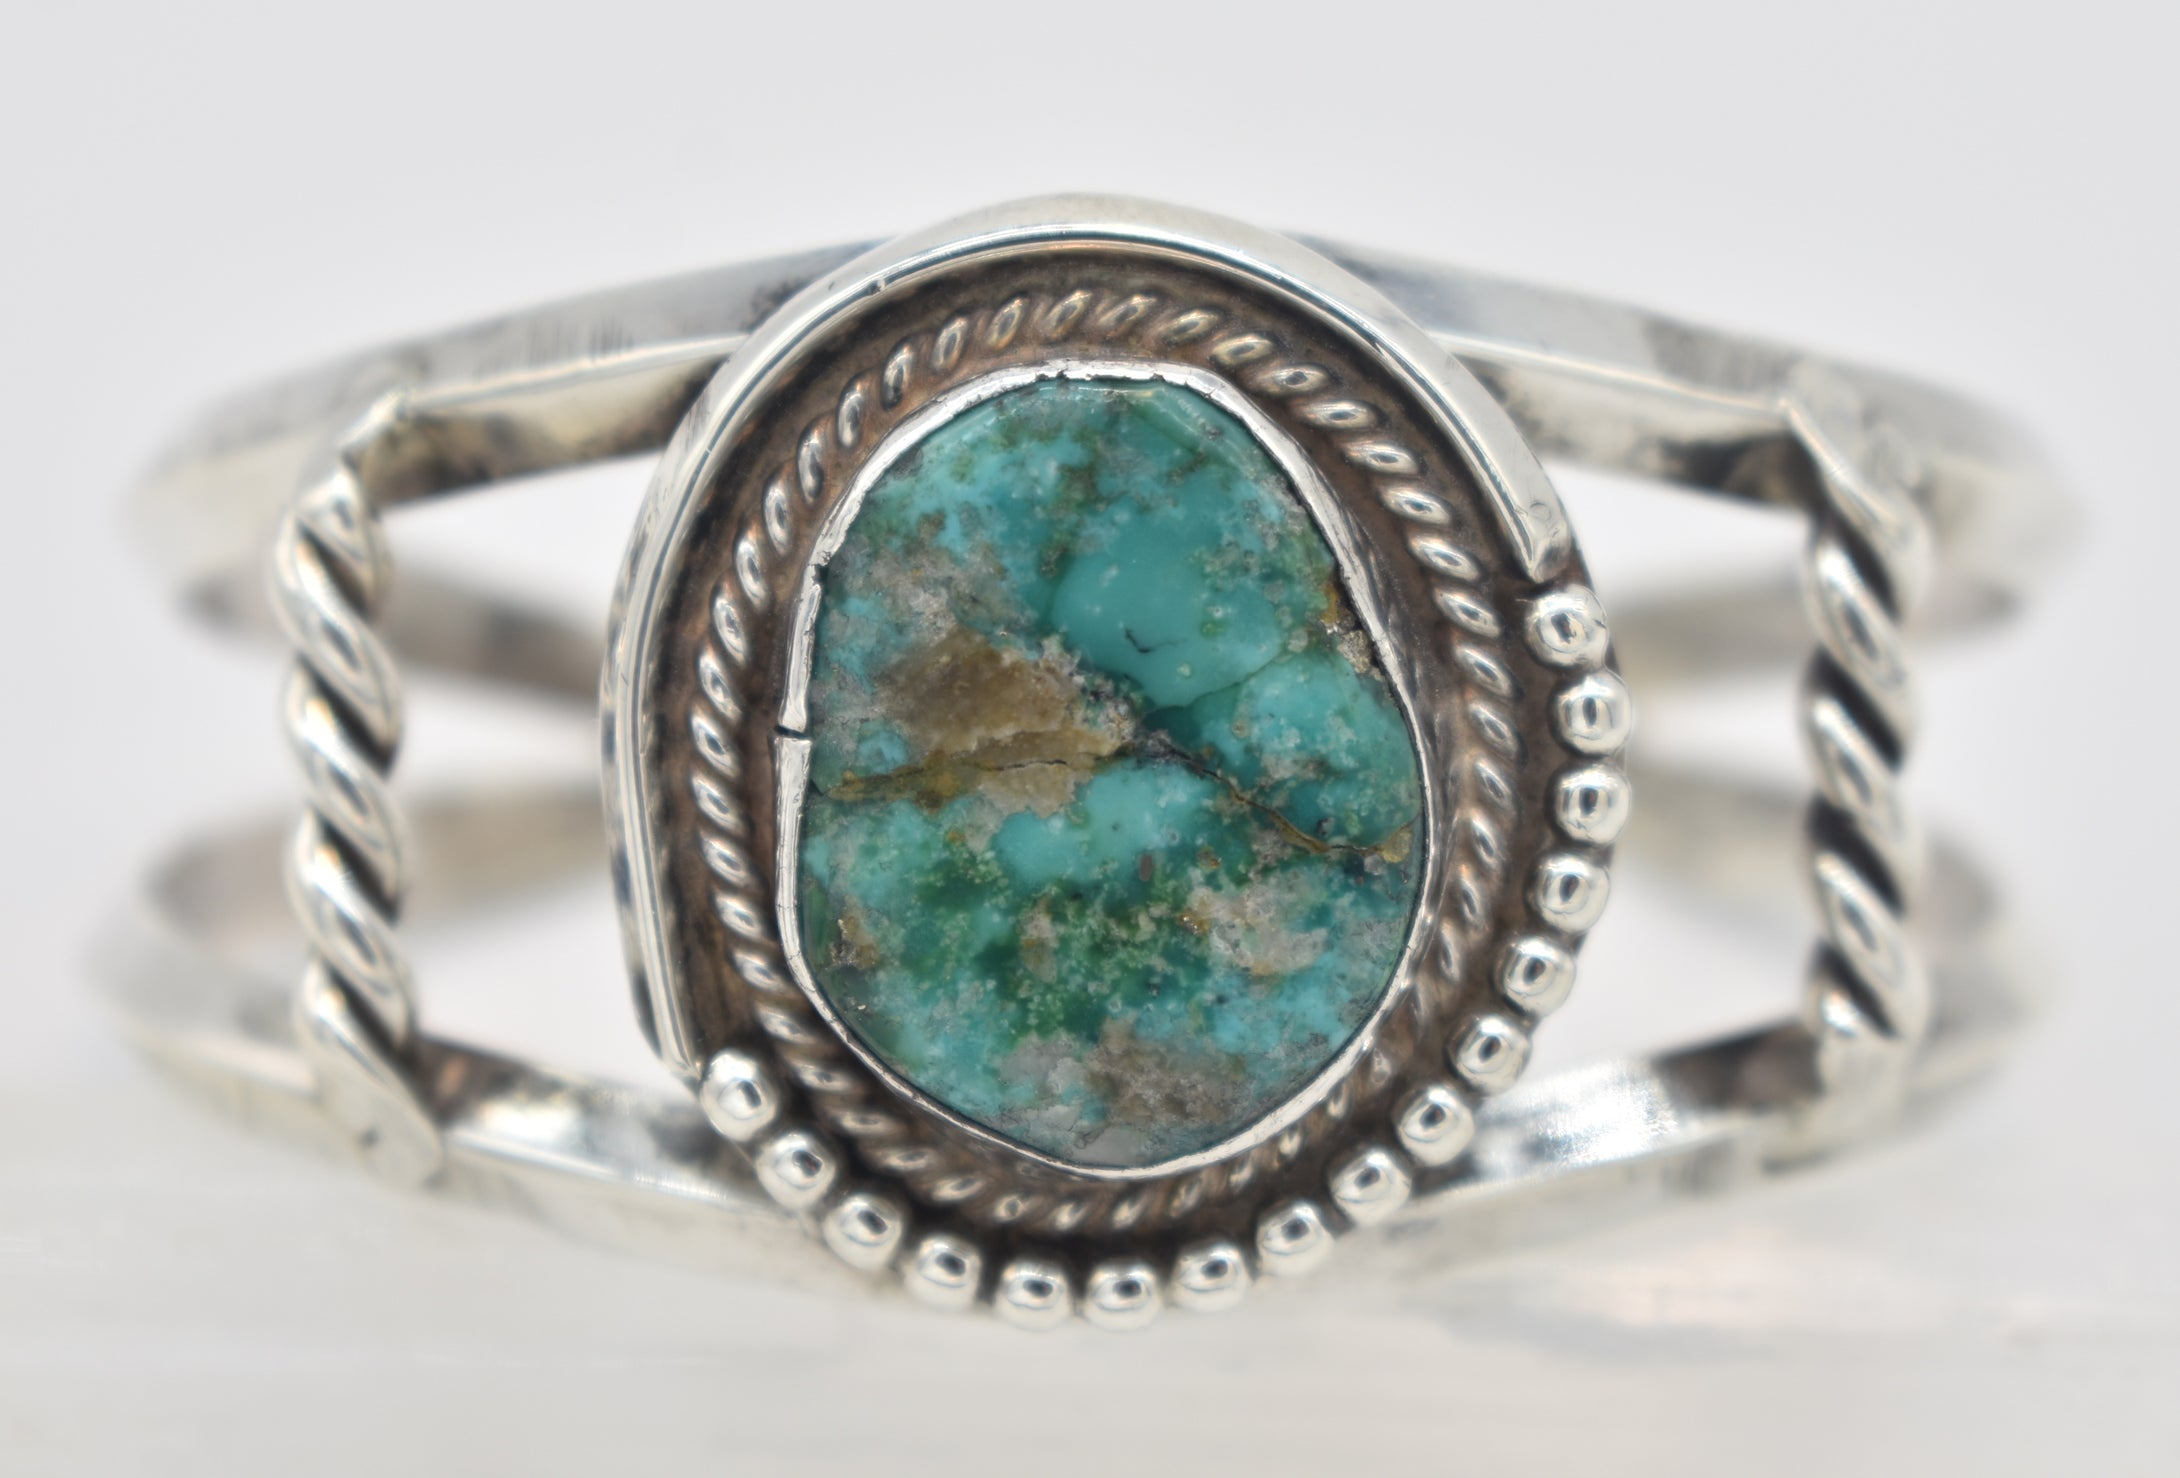 Vintage Green Turquoise Sterling Silver Cuff